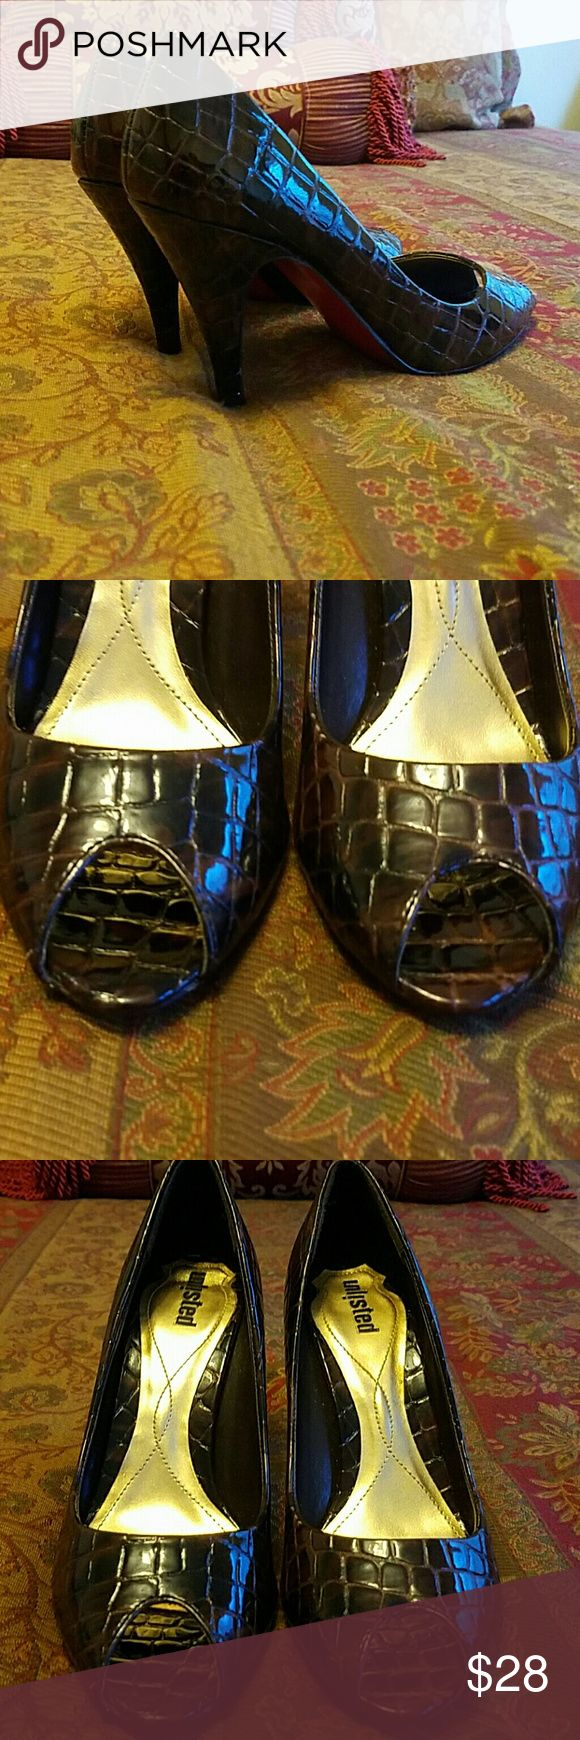 Brown Croc Peer-toe Red Sole Pumps, Size 8.5 Pre-owned in good condition. Unlisted Shoes Heels